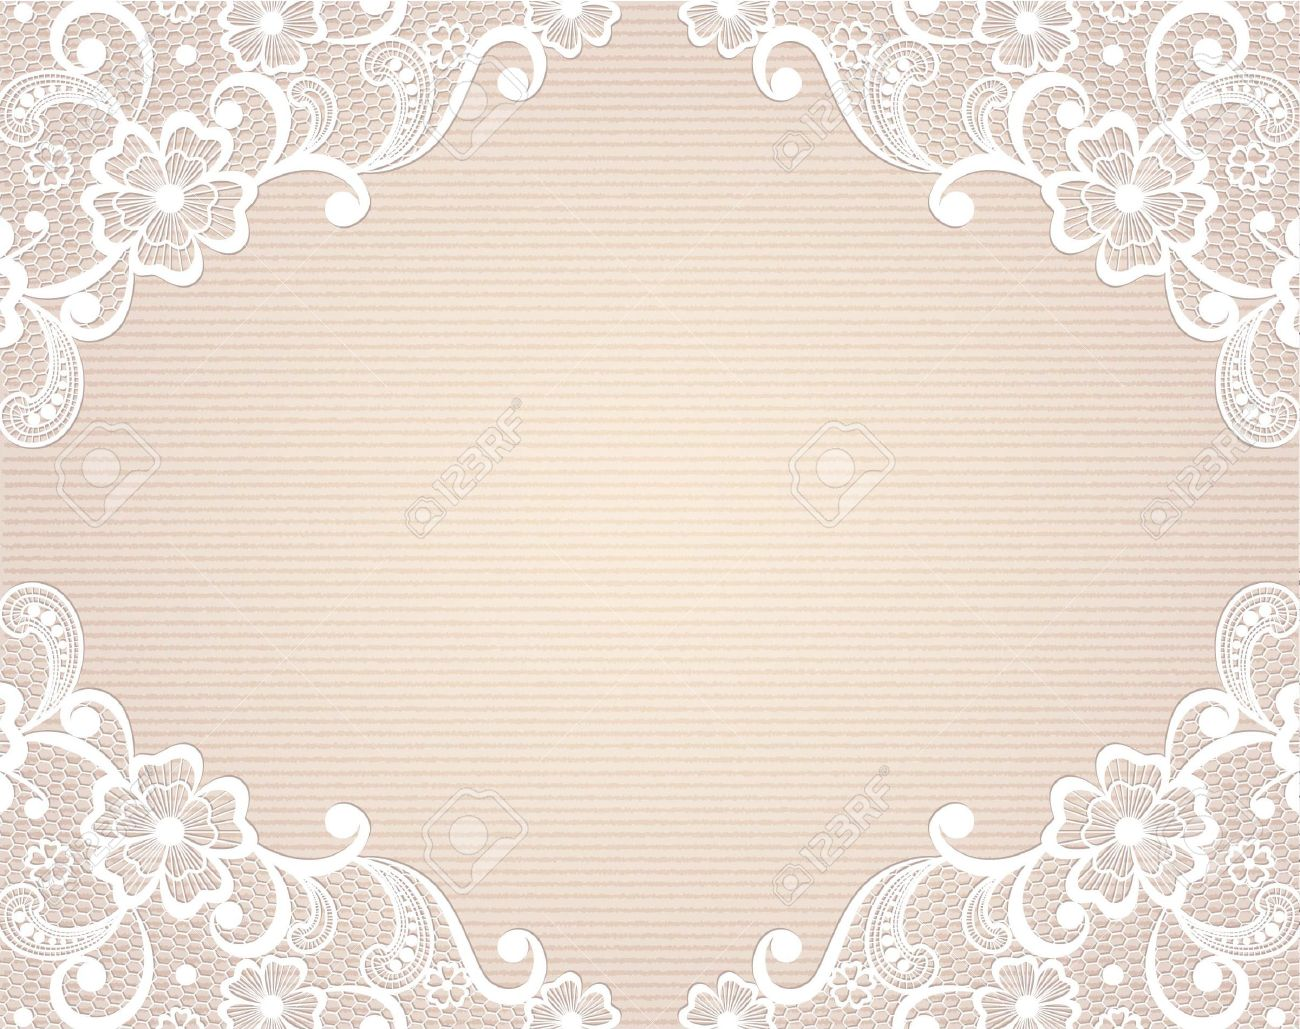 Template frame design for card Vintage Lace Doily.